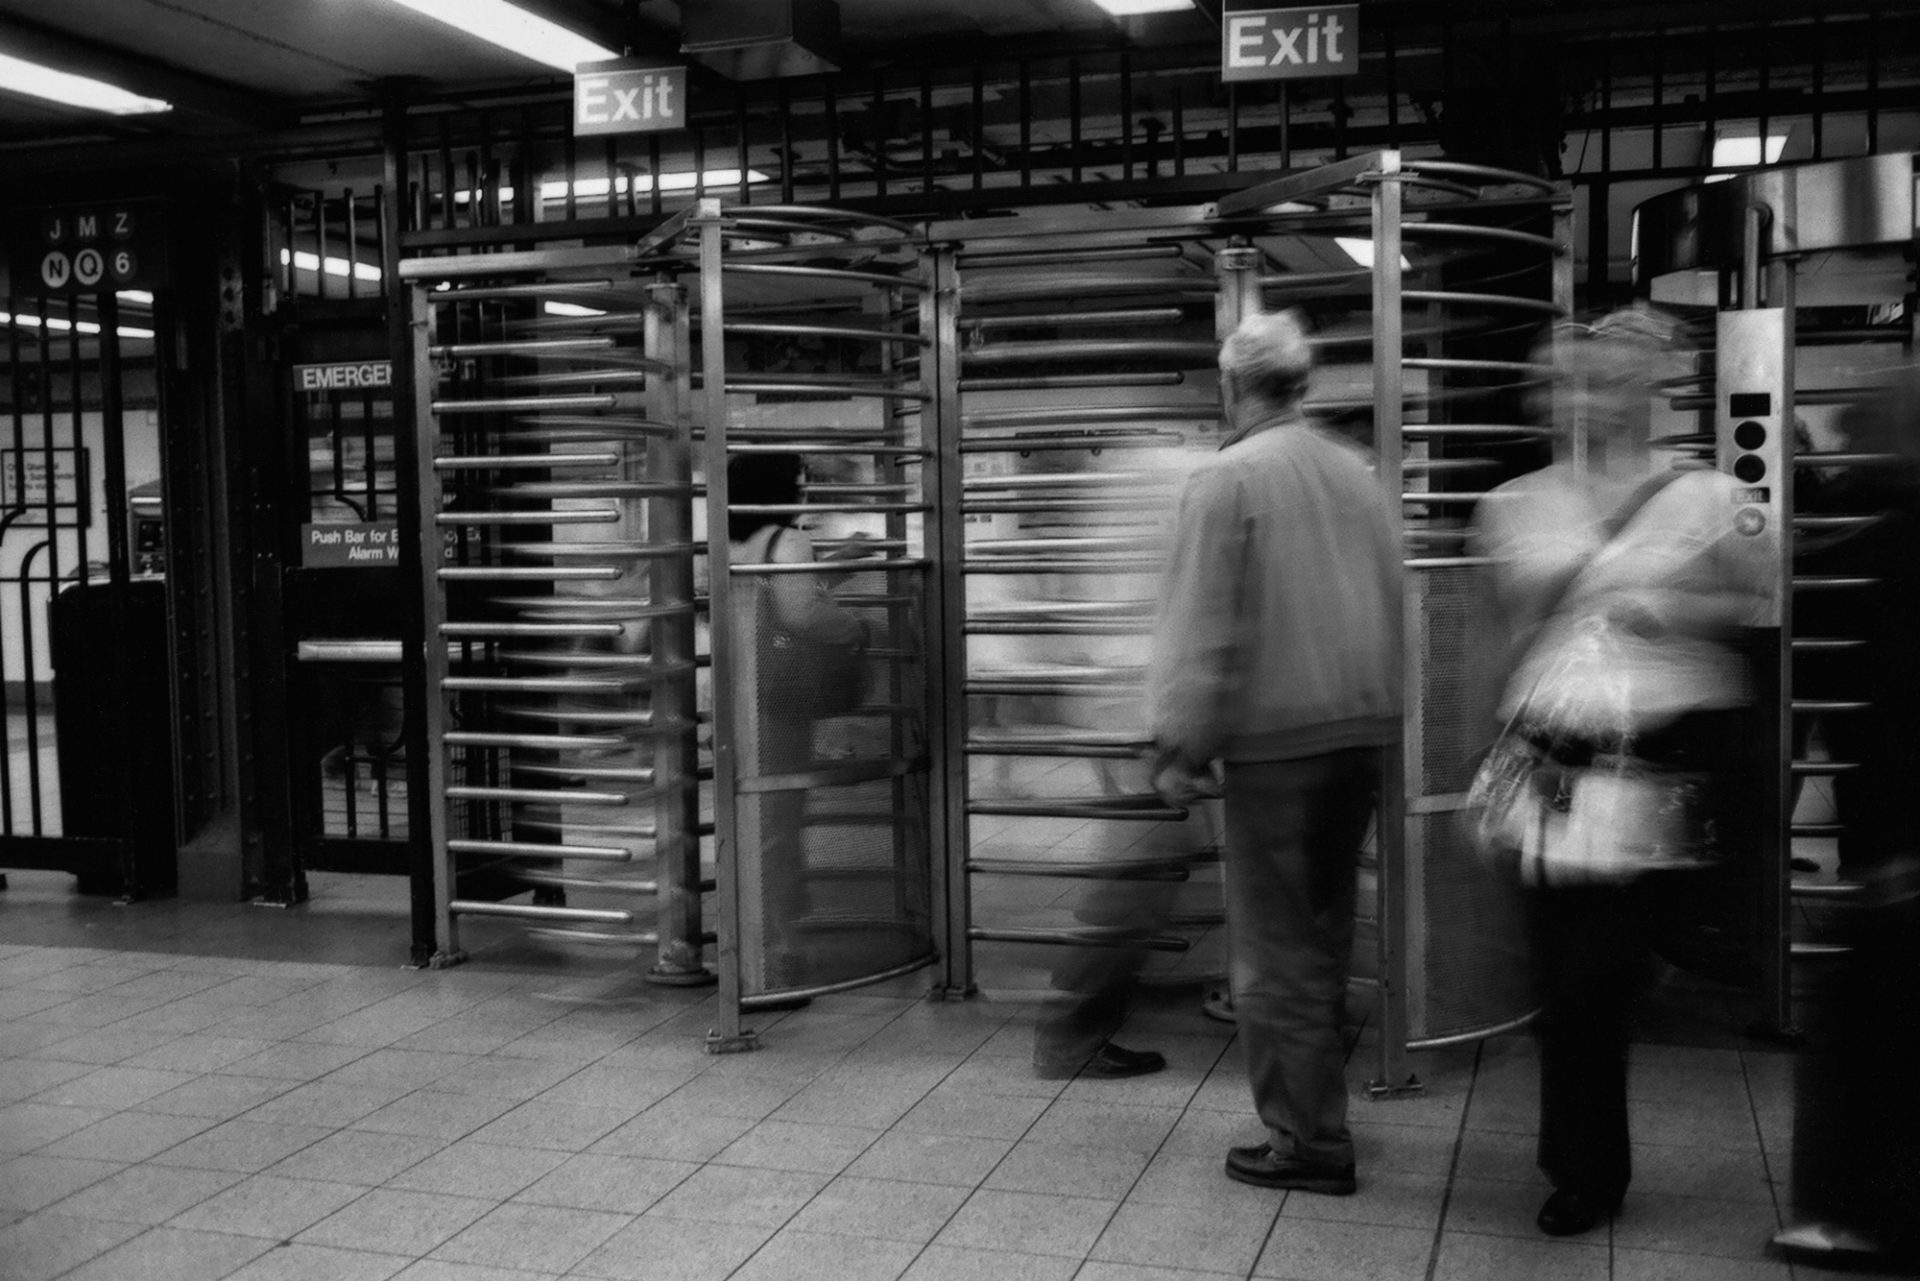 Subway entrance, NYC.